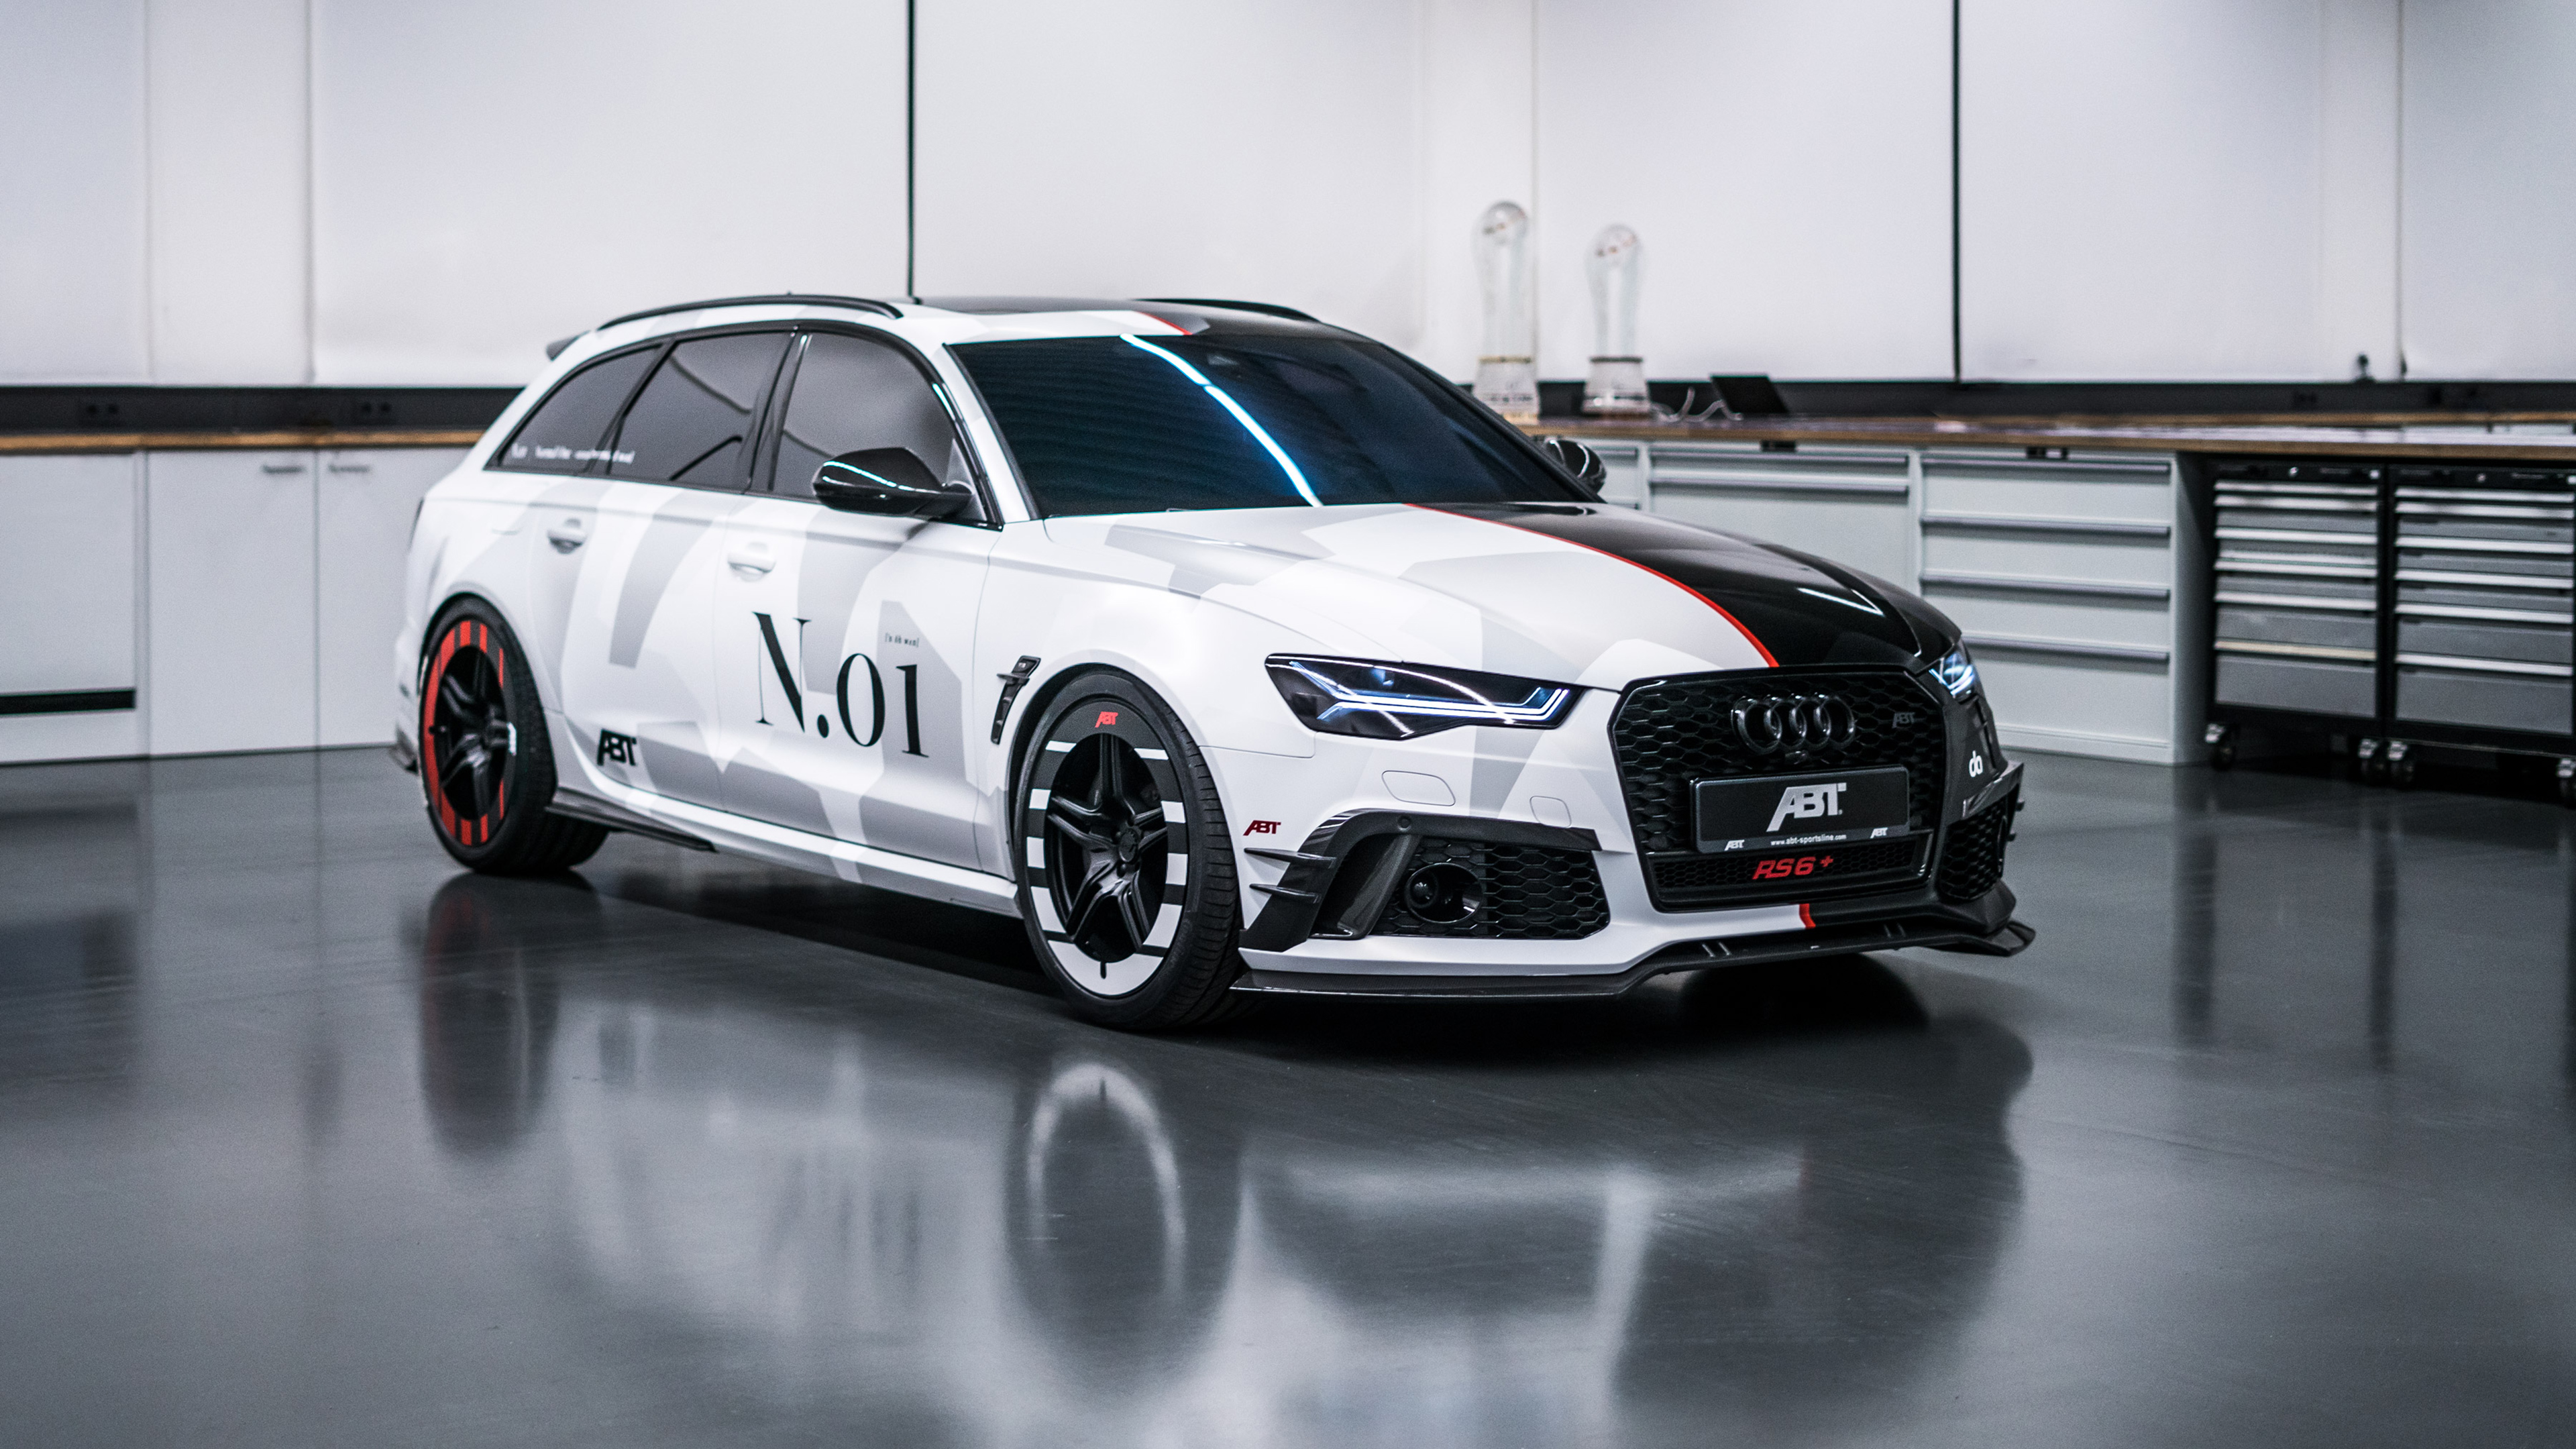 2018 abt audi rs6 avant for jon olsson 4k wallpaper hd car wallpapers id 9641. Black Bedroom Furniture Sets. Home Design Ideas